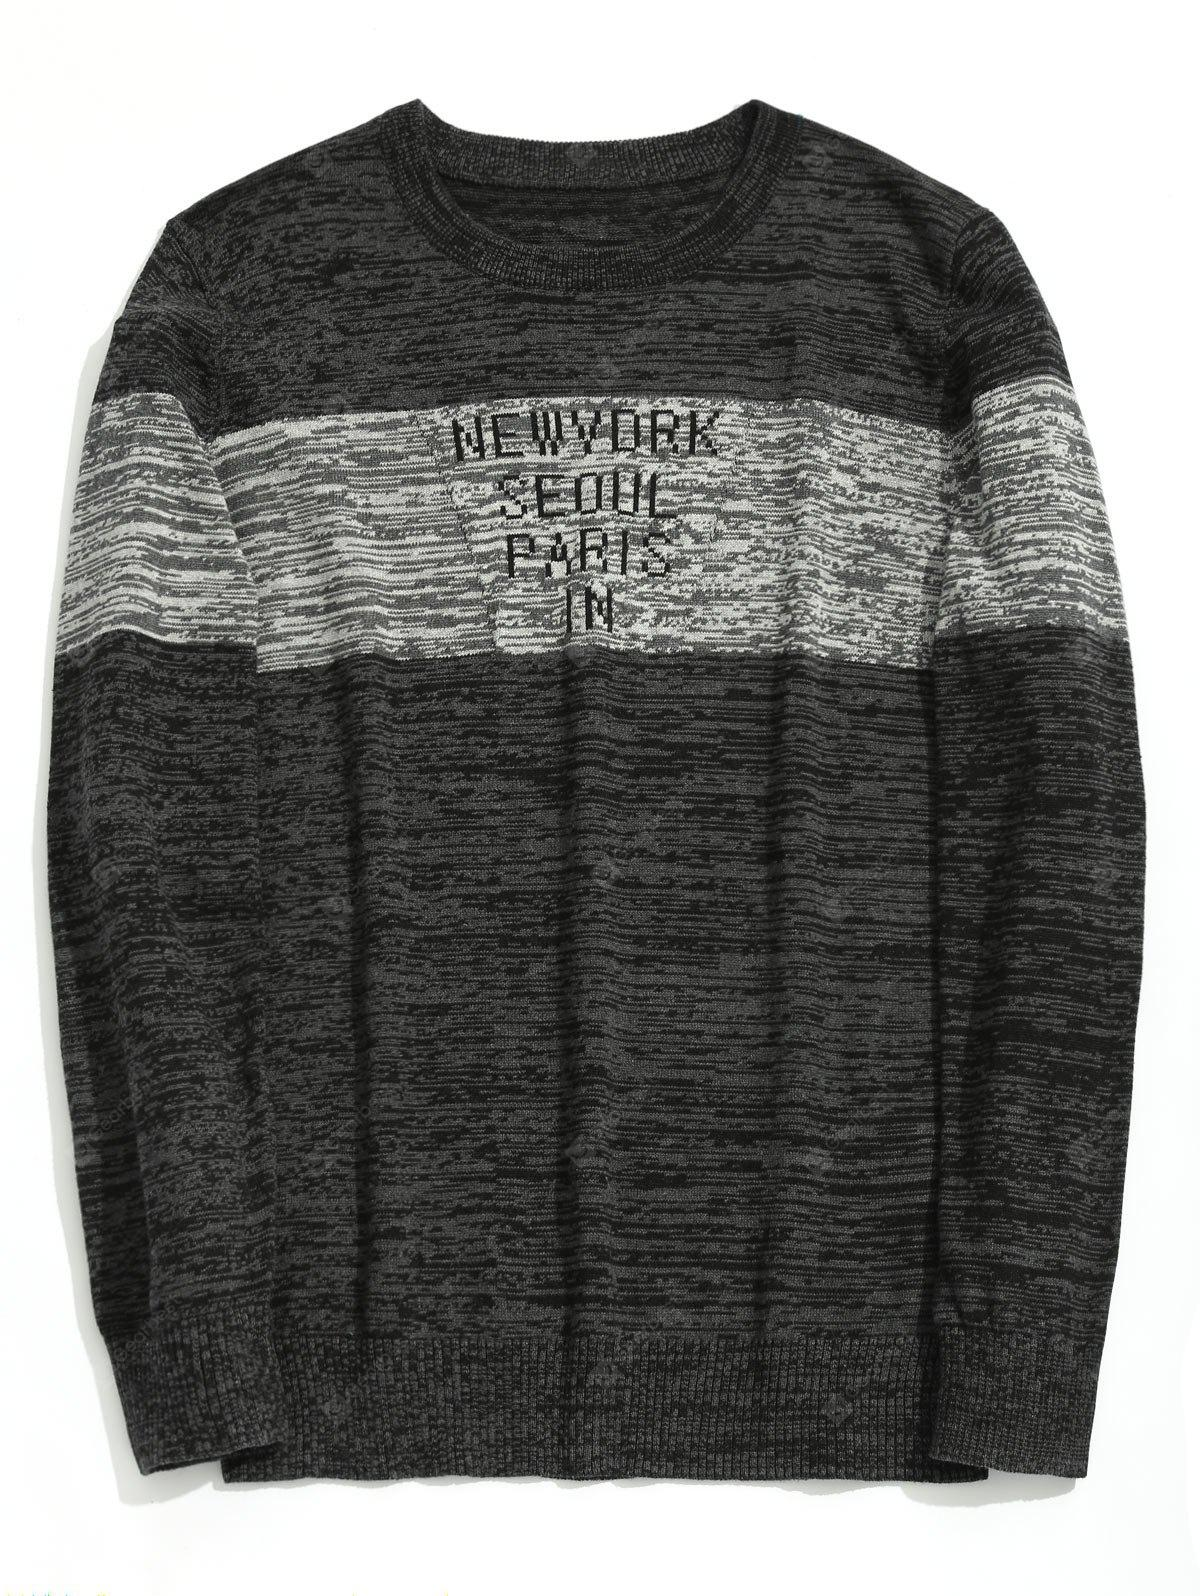 Suéter para hombre Graphic Heathered